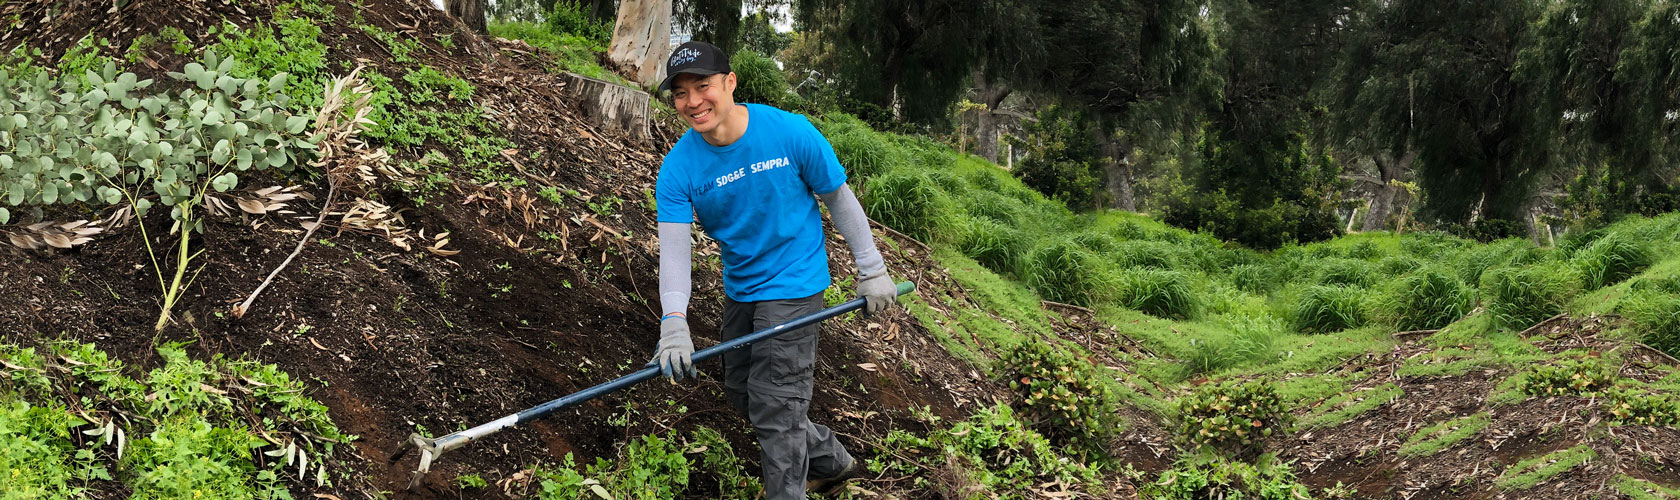 Volunteer helping at tree-planting event